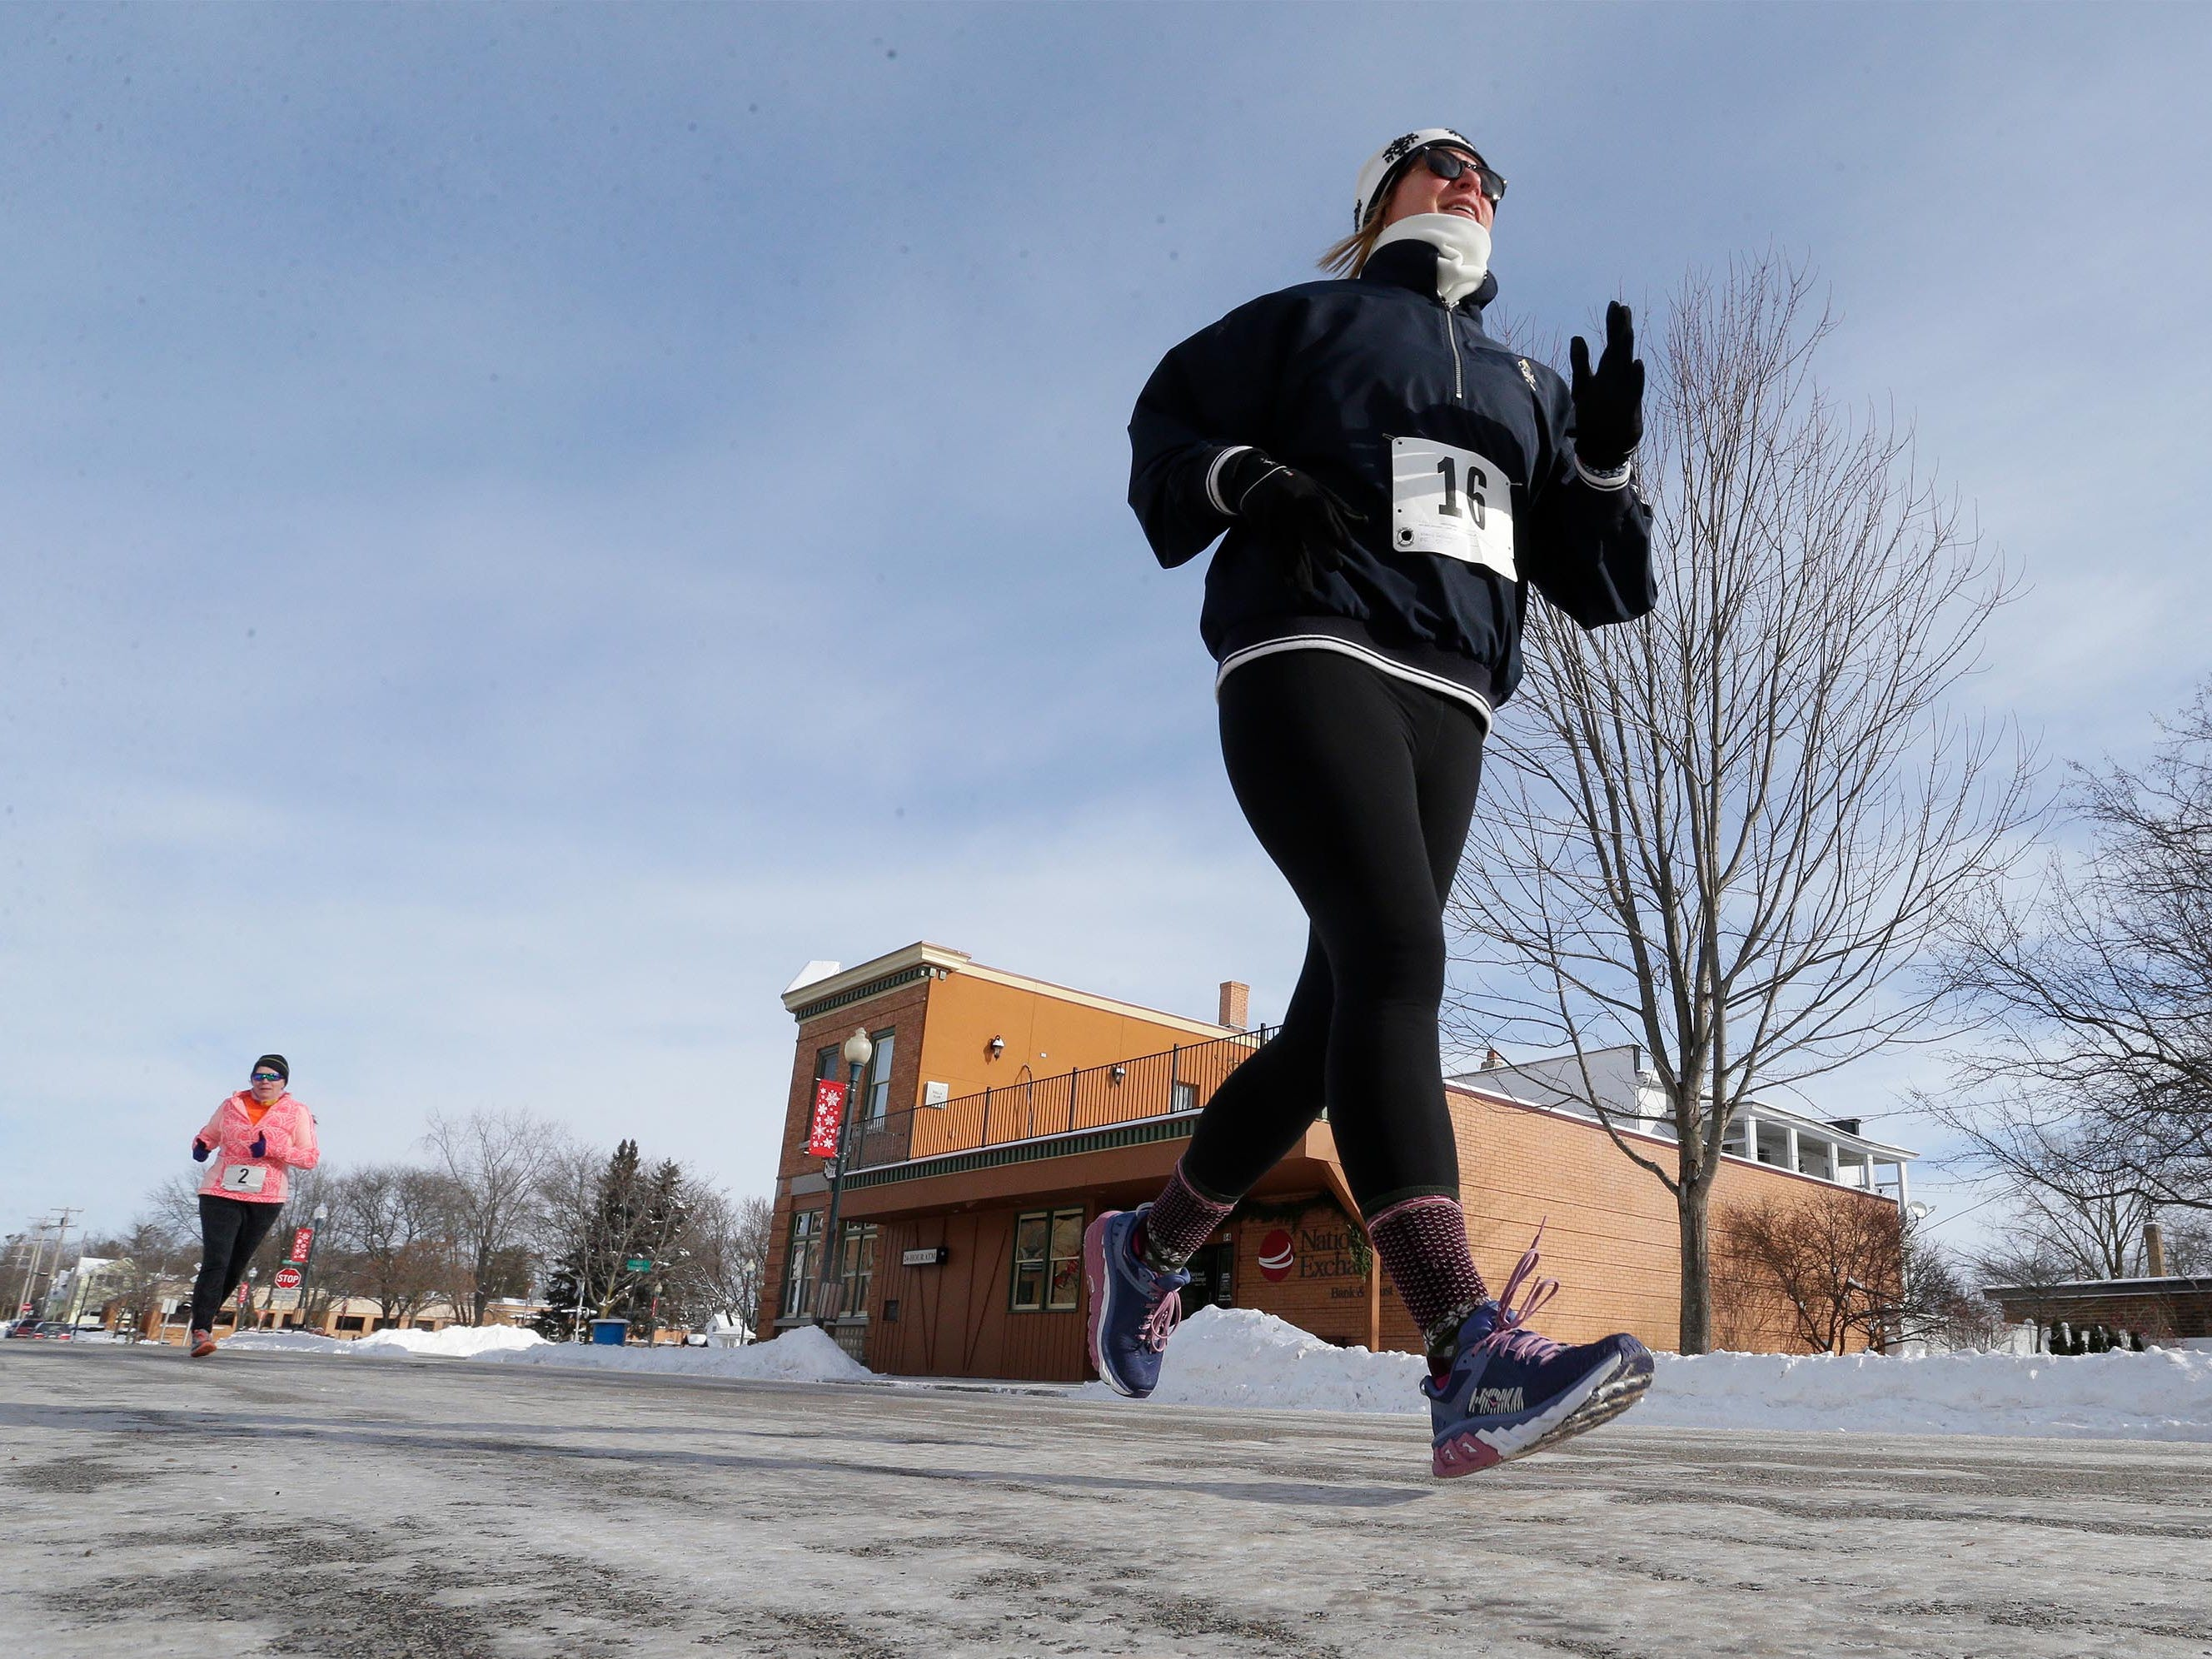 Mary Sellinger (16) of Shorewood, Wis., runs the Schneelauf Run, Saturday, January 26, 2019, in Elkhart Lake, Wis. The event is part of Schnee Days in Elkhart Lake. Sellinger had a time of 20:04 at the event.